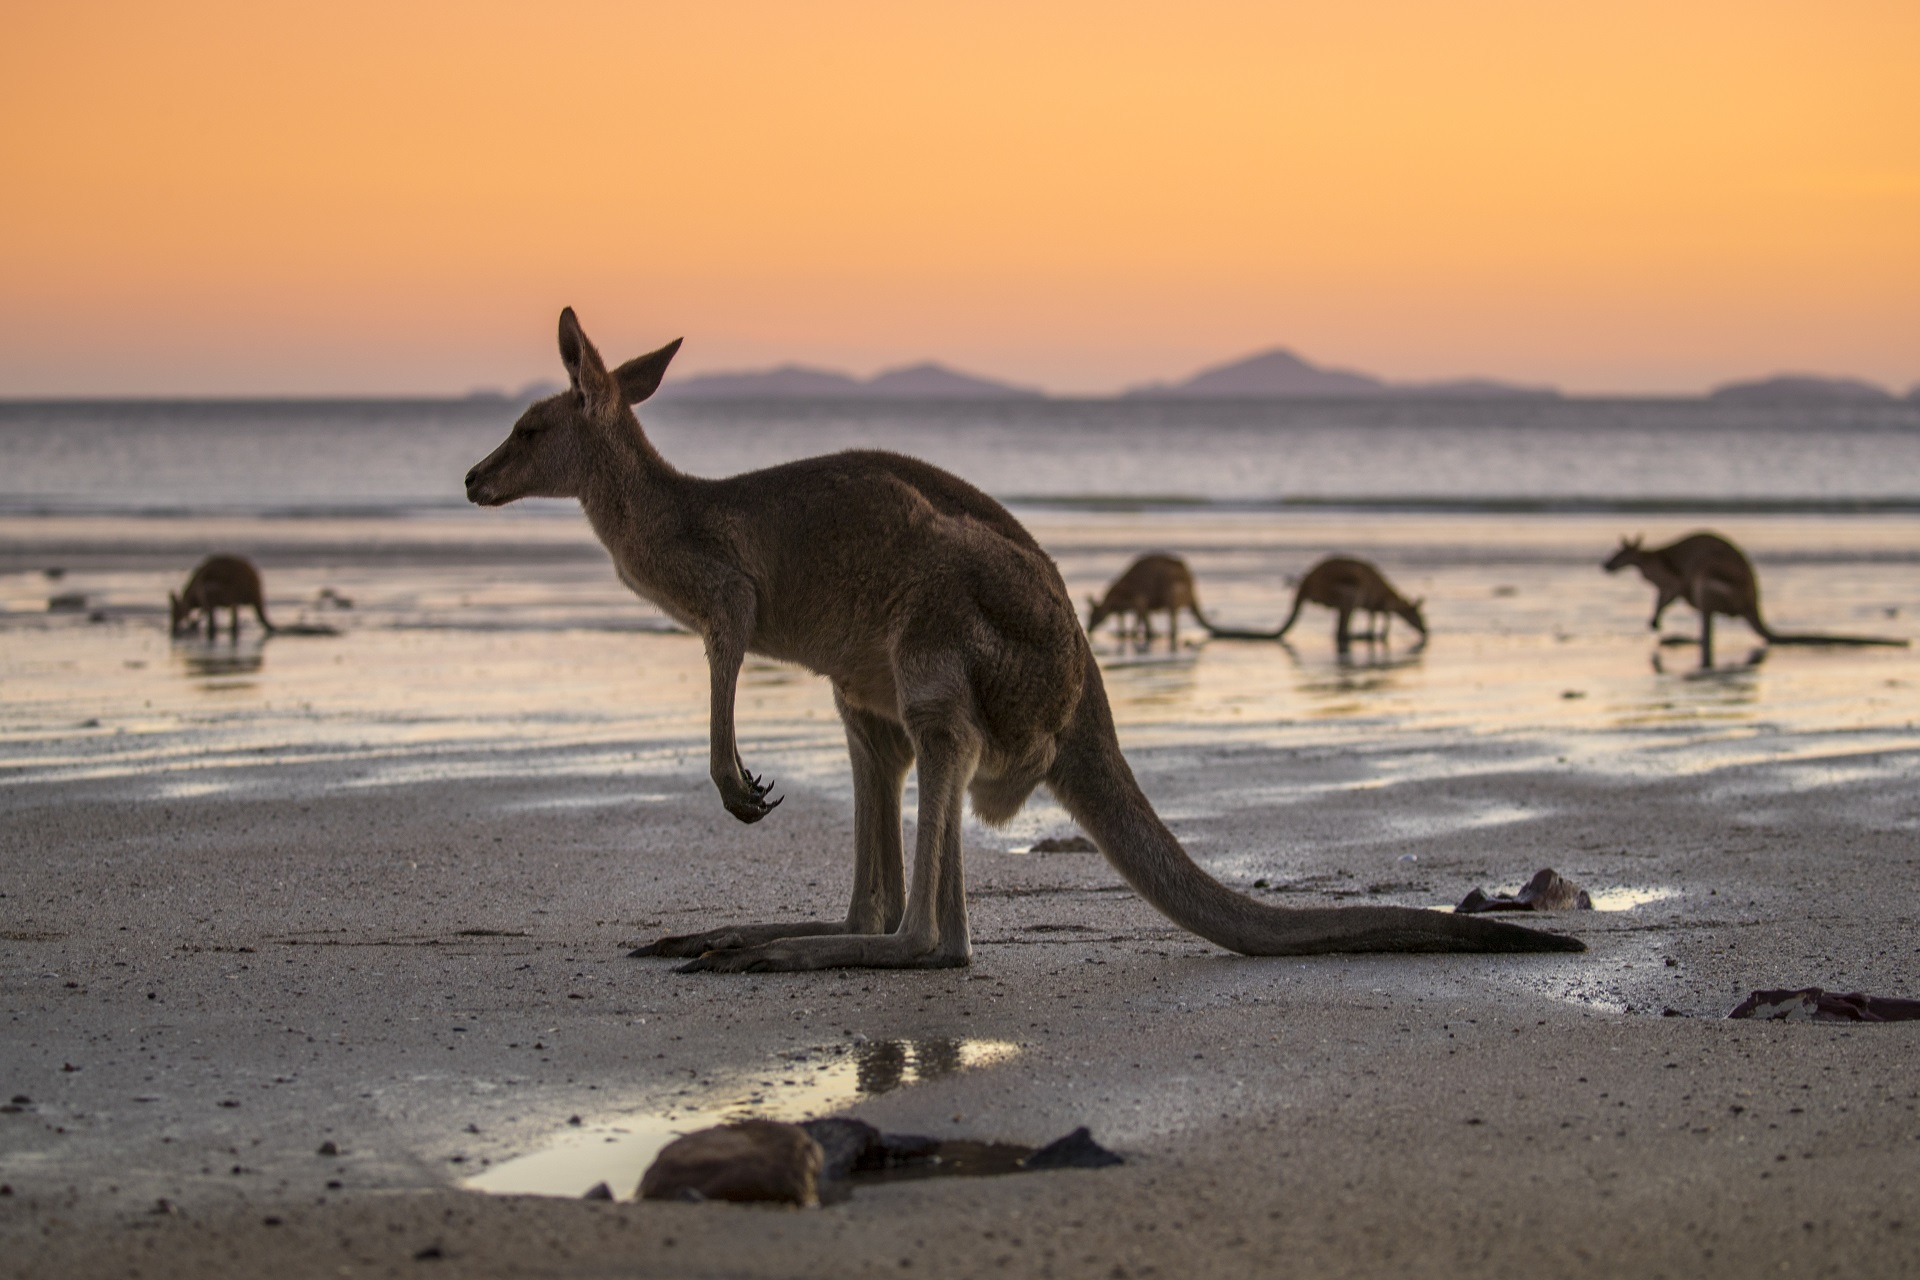 Känguru am Strand in Australien